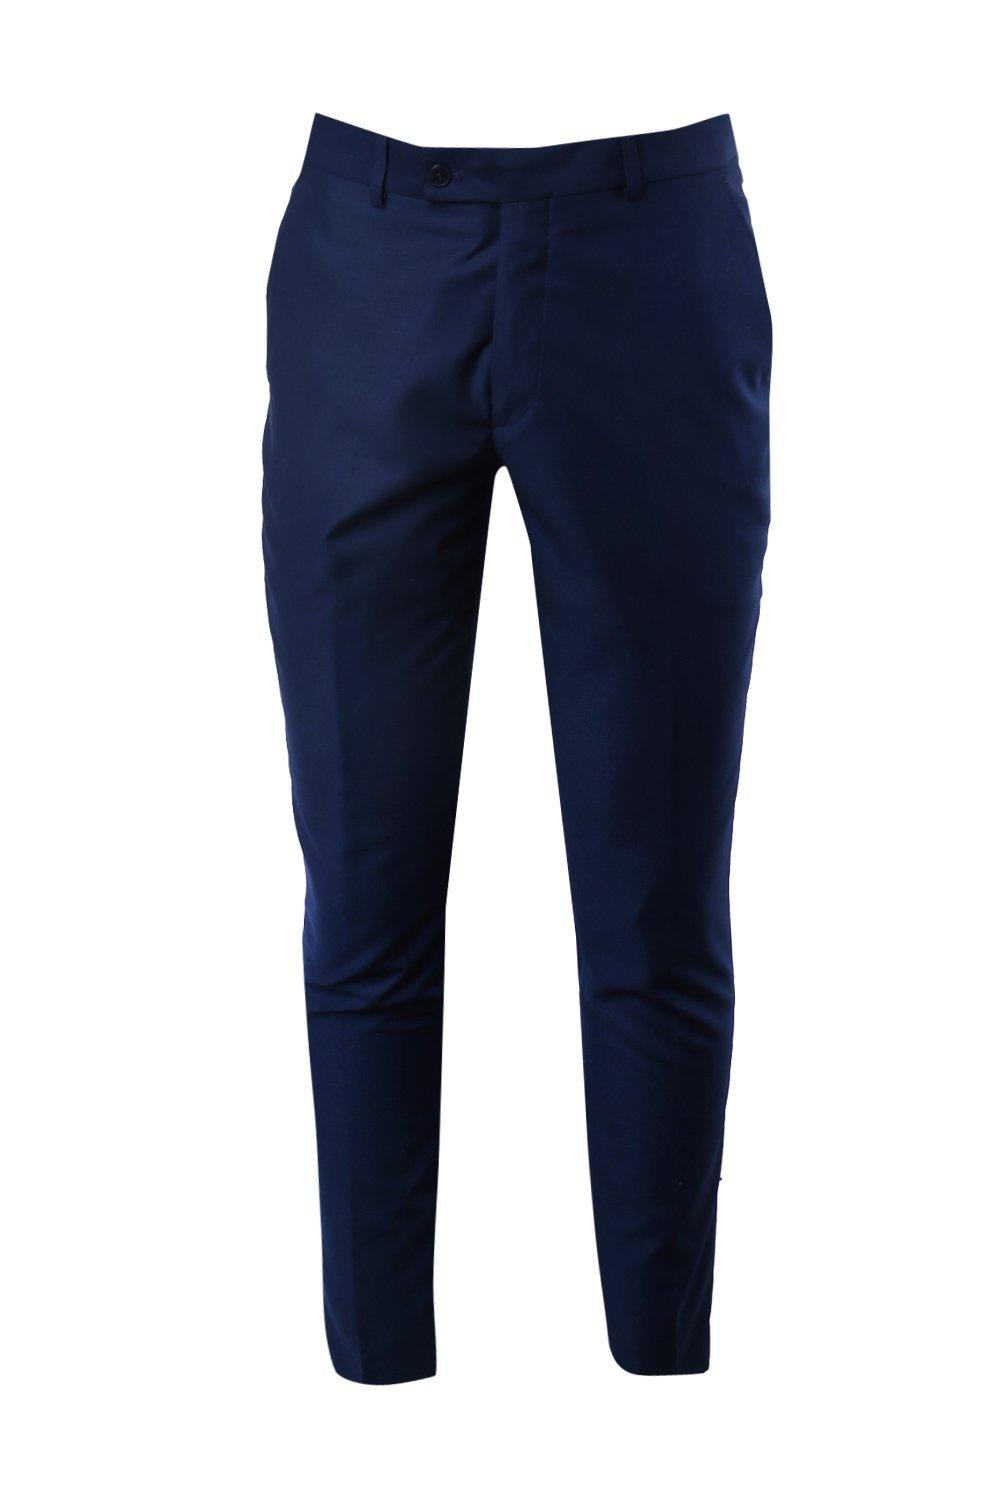 boohooMAN navy Skinny Fit Suit Trousers